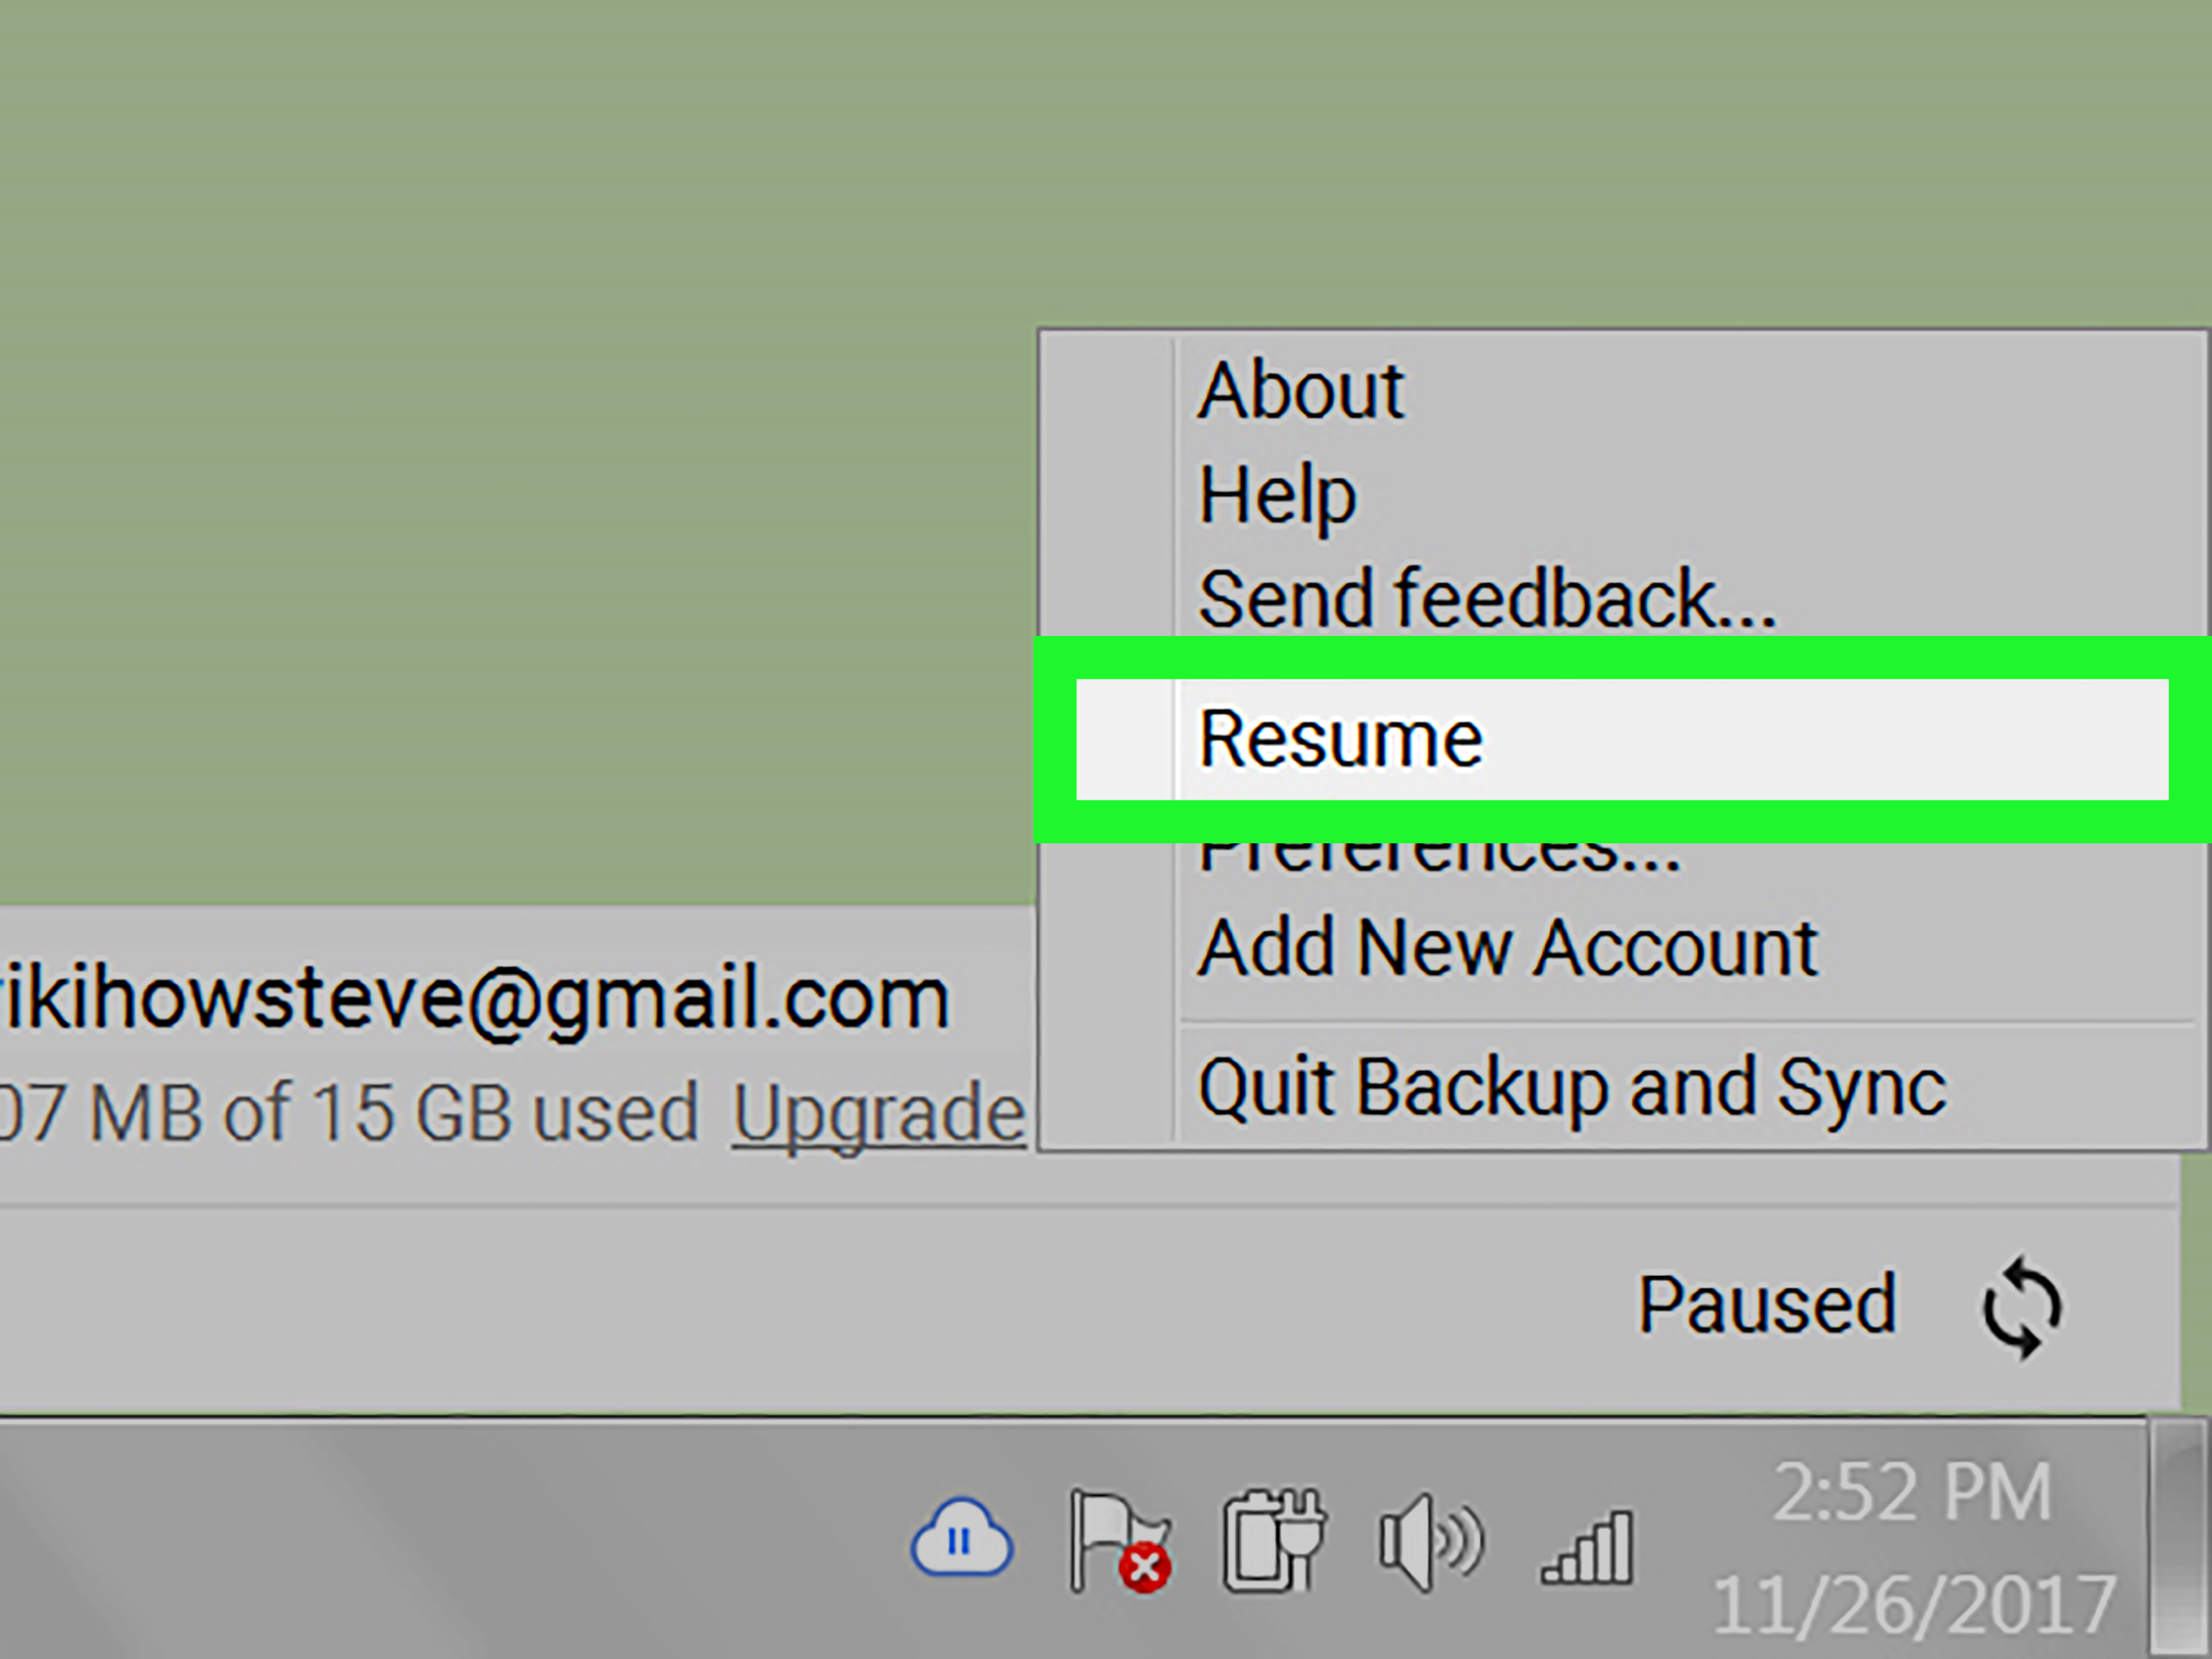 How to Resume a Google Drive Upload: 5 Steps (with Pictures)